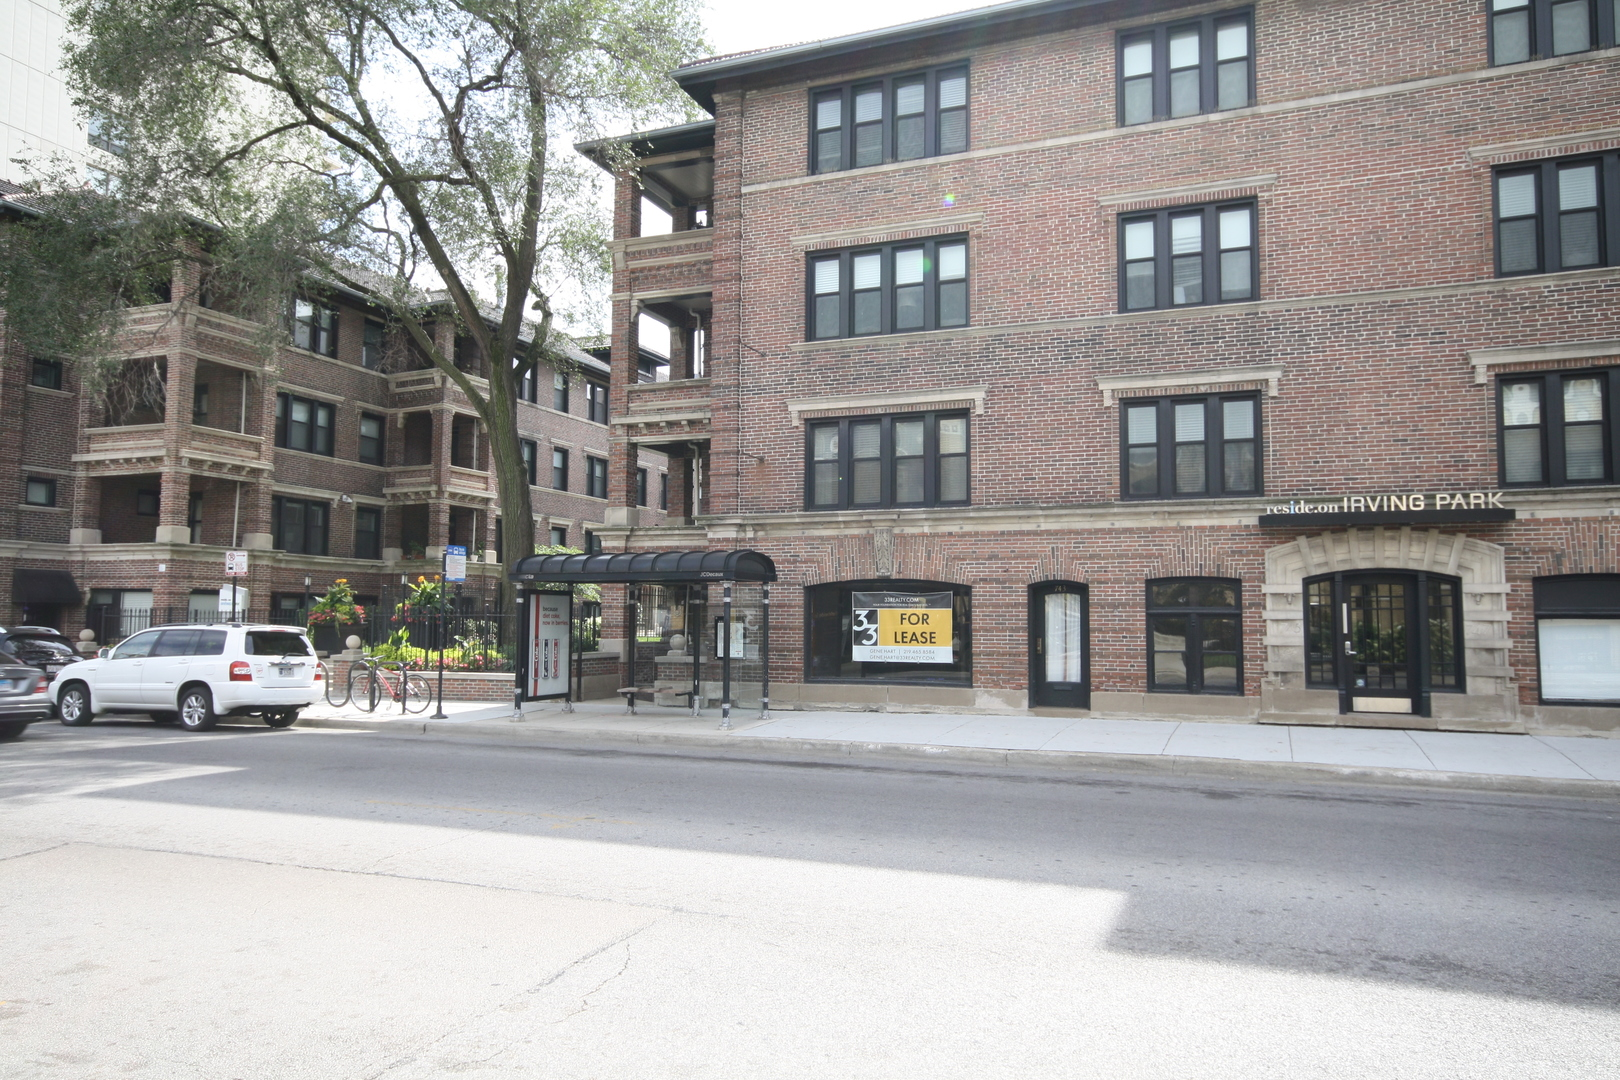 749 Irving Park ,Chicago, Illinois 60613